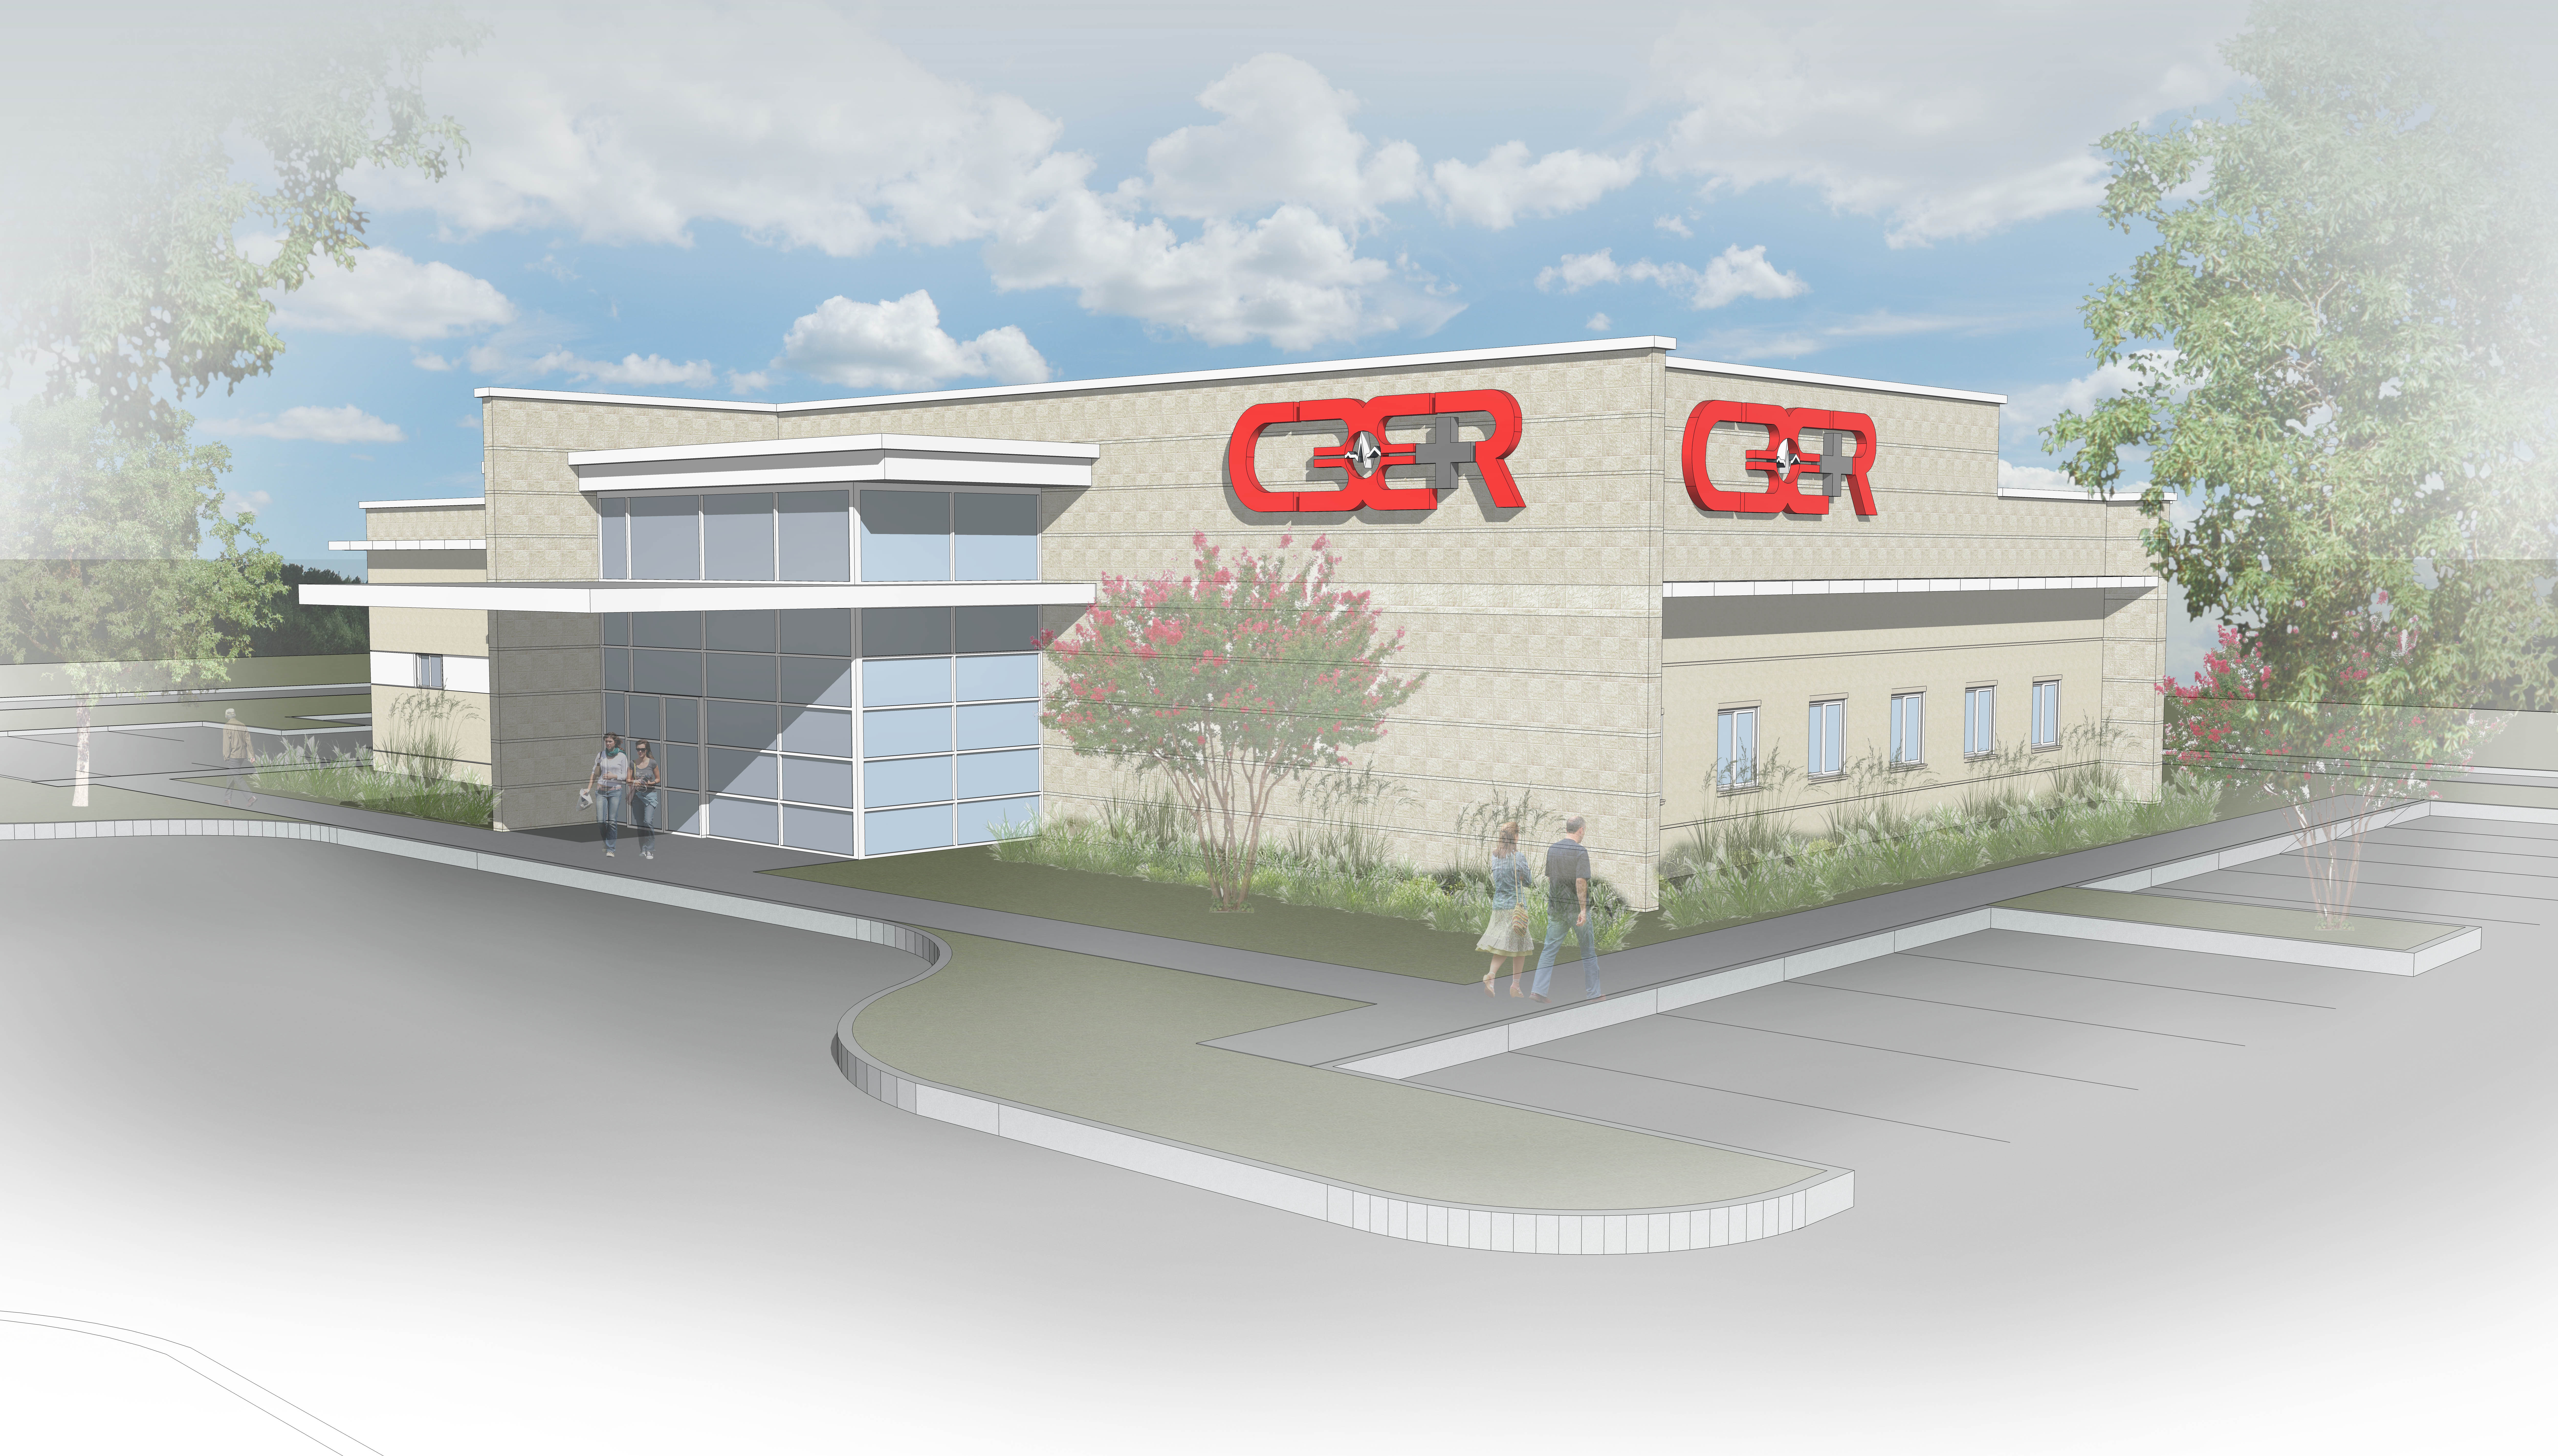 Code 3 Urgent Care Pharmacy Is Coming To Las Vegas